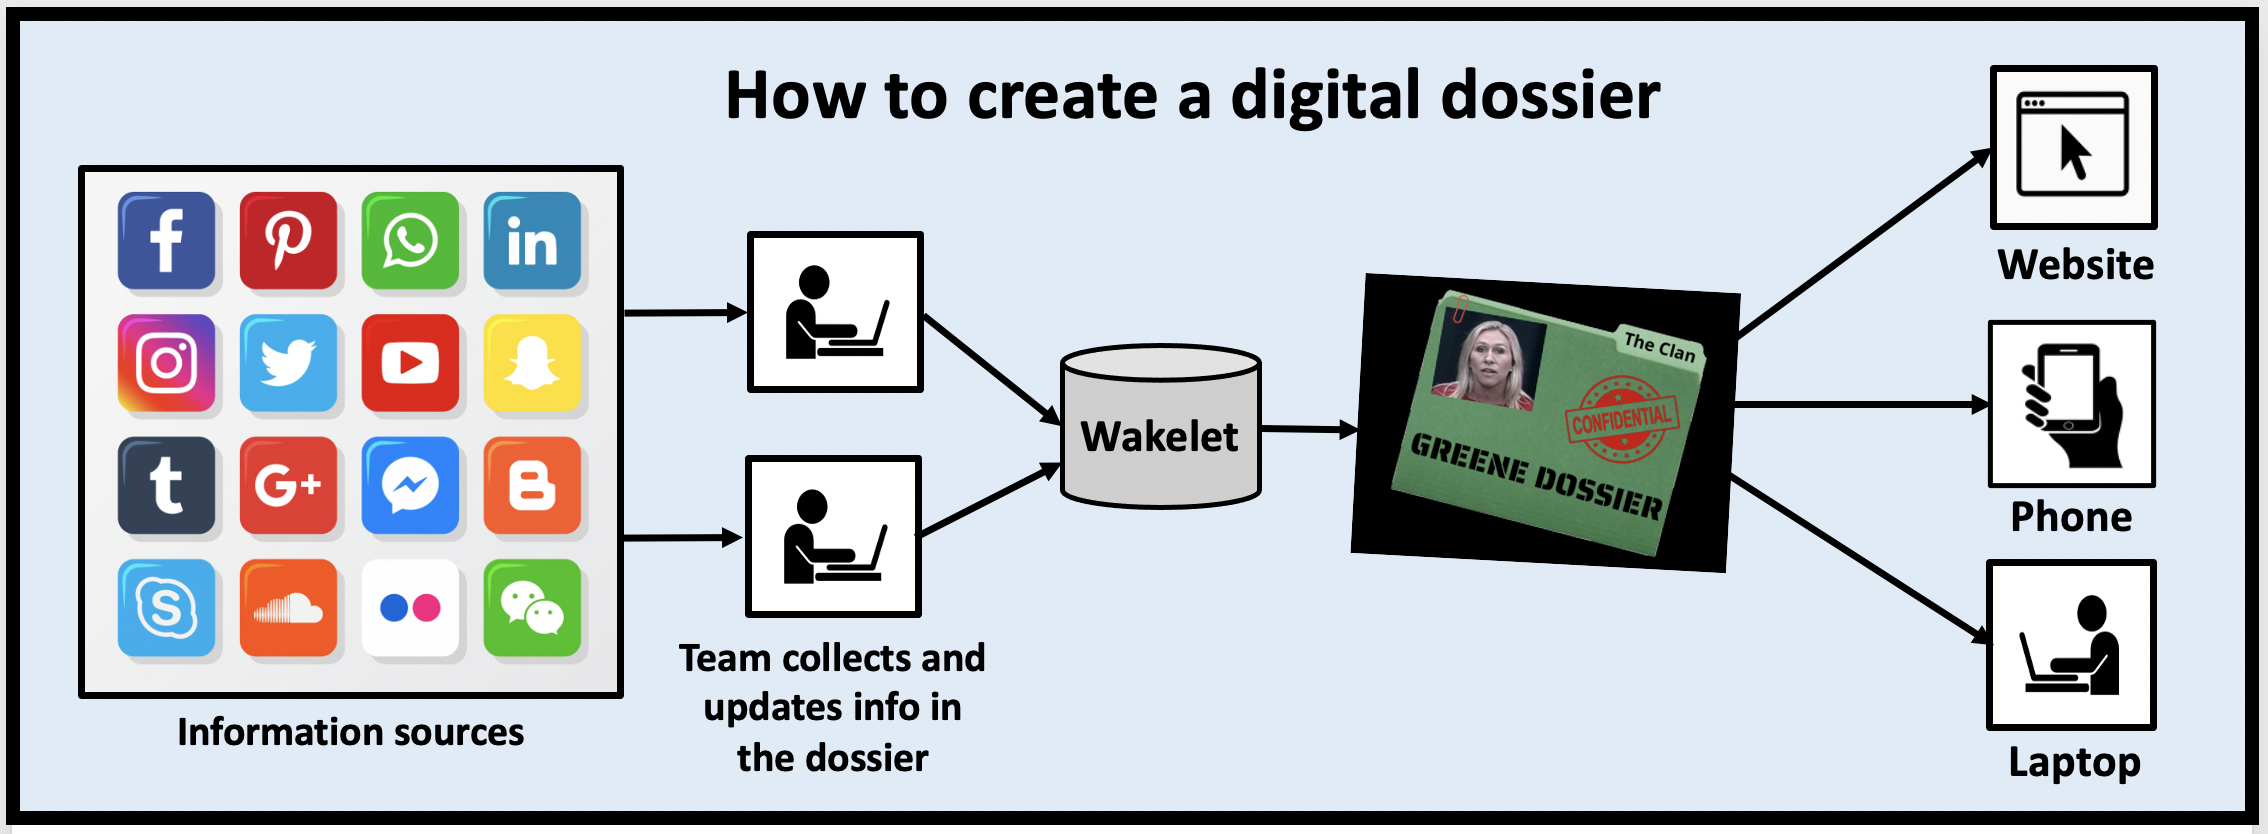 How to create a digital dossier.